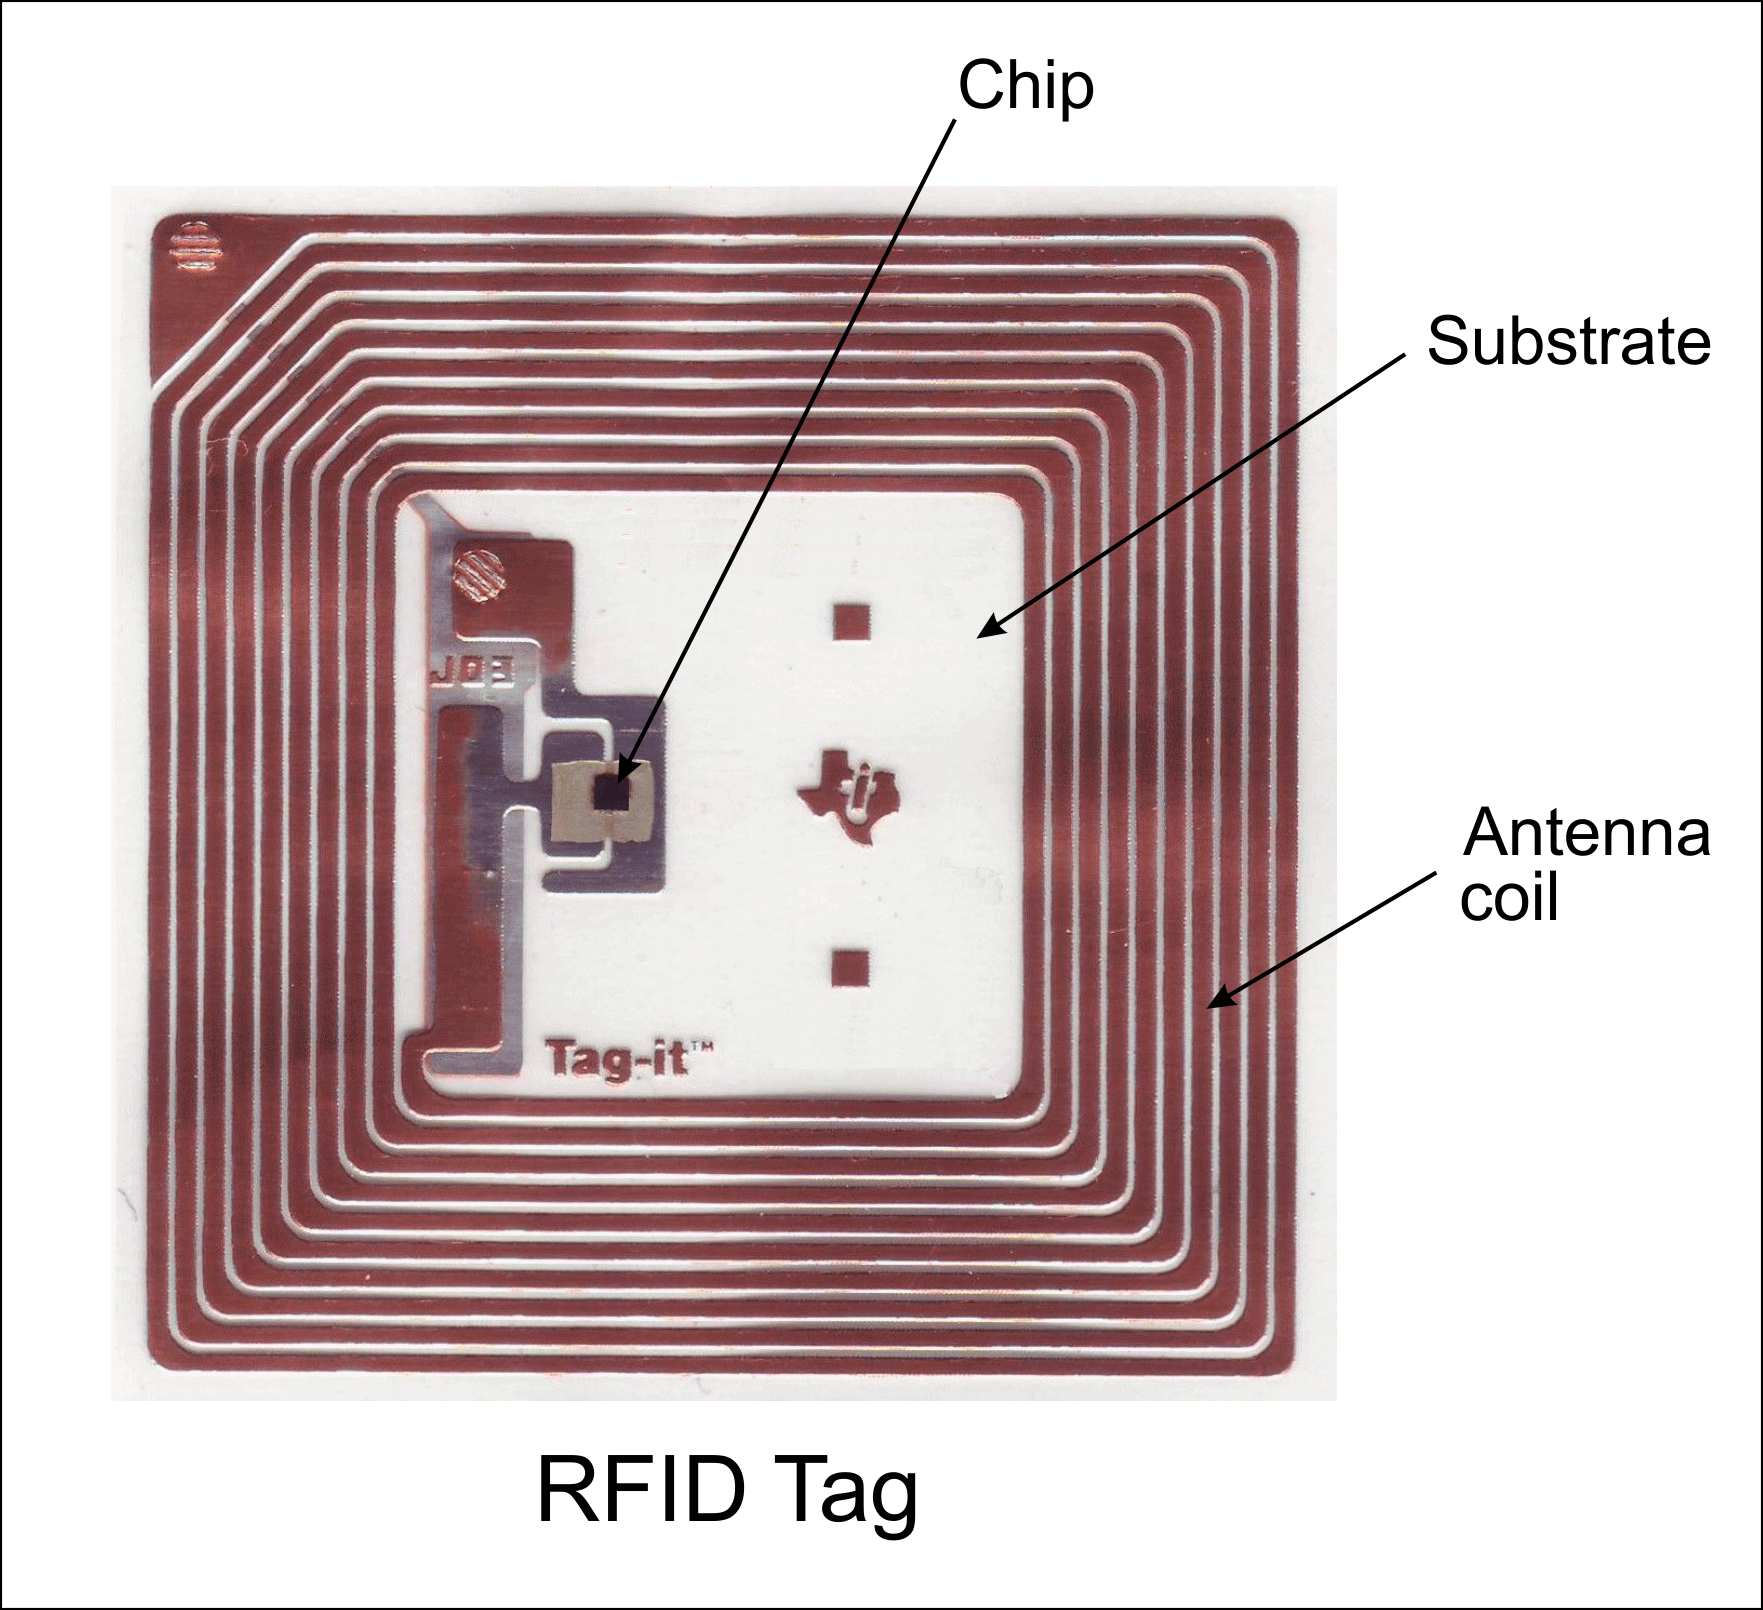 Rfid on tracking device chip